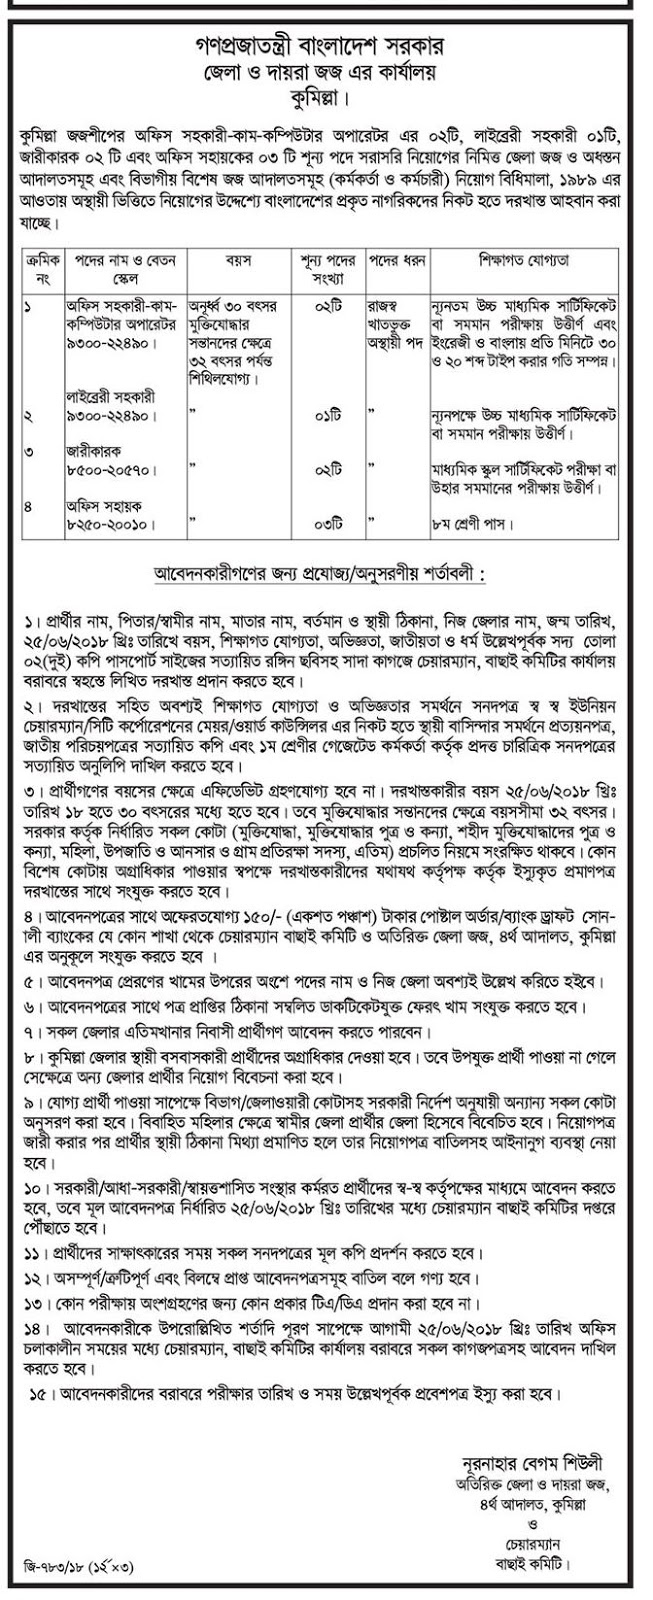 Judge and Sessions Judge's Office, Comilla Job Circular 2018